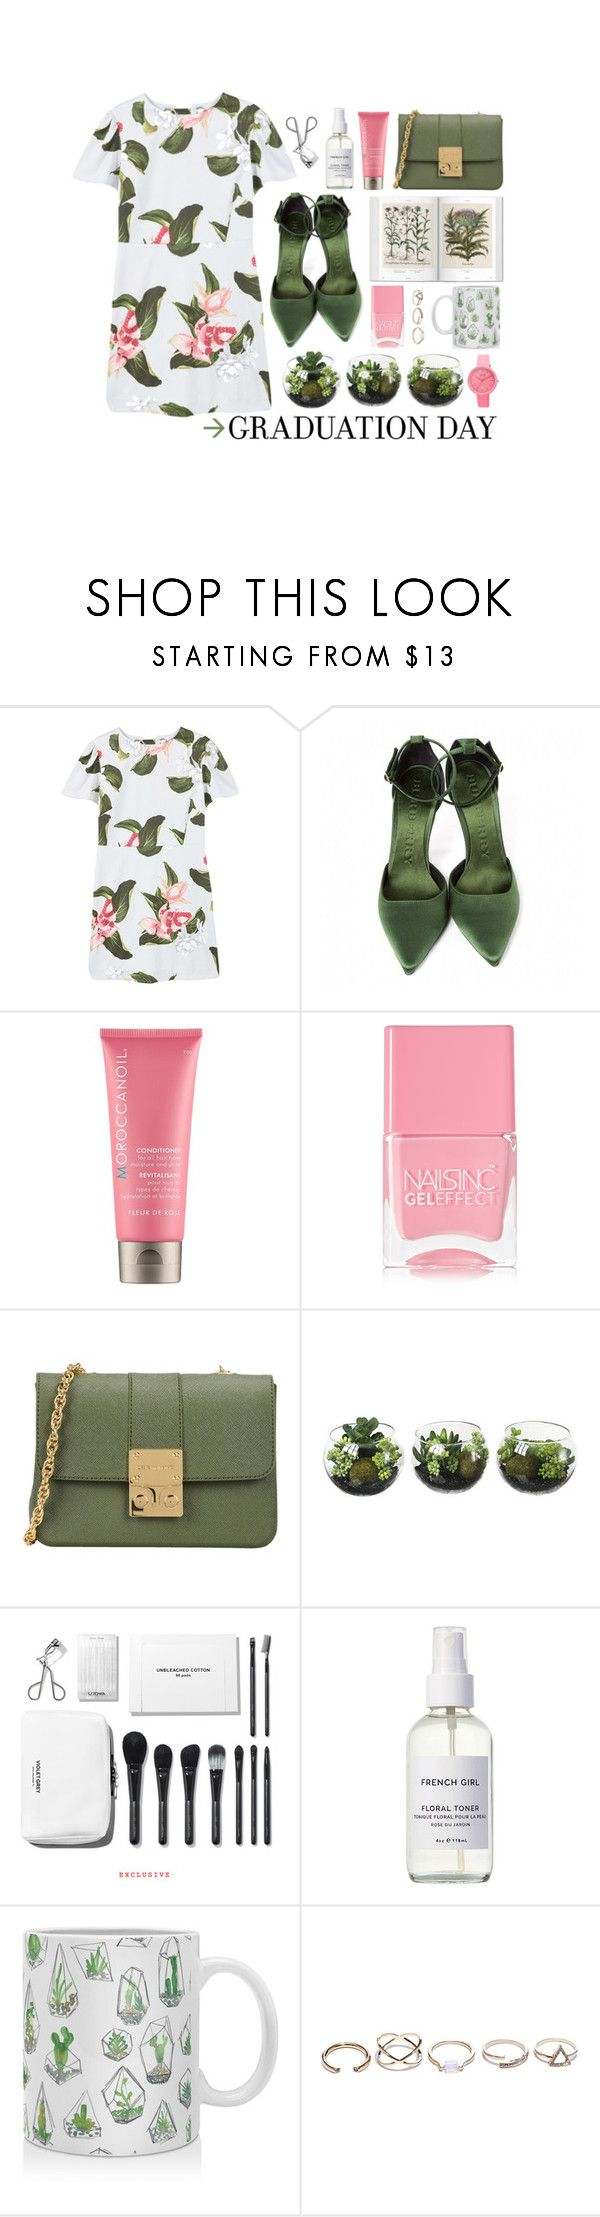 """""""like a life vest or a birds nest"""" by fernweeh on Polyvore featuring moda, MANGO, Burberry, Moroccanoil, Nails Inc., Design Inverso, French Girl, DENY Designs, GUESS i Crayo"""